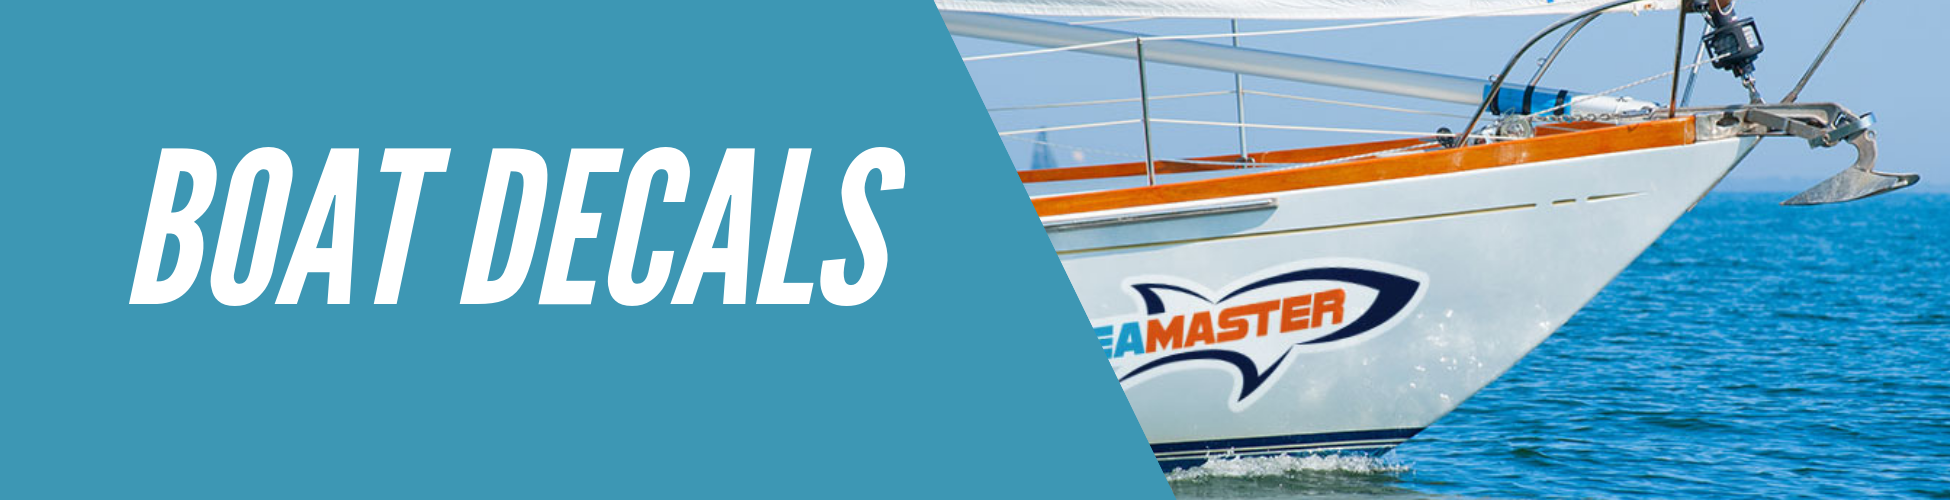 Custom Boat Decals, Lettering & Name - Speedy Pros Inc